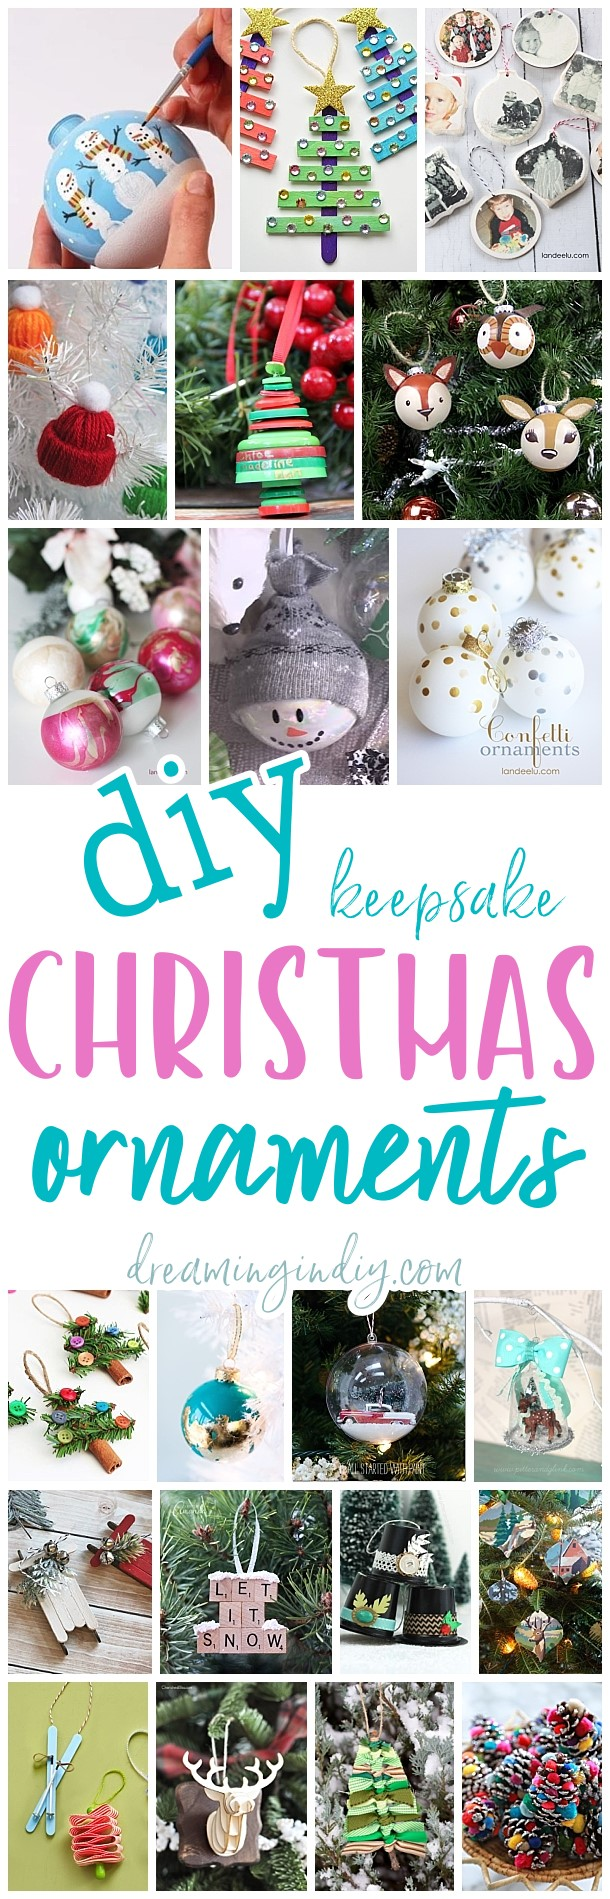 The Best DIY Christmas Tree Ornaments to Make - Easy Handmade Holiday Keepsakes for all ages to make via Dreaming in DIY #diychristmasornaments #diyornaments #keepsakeornaments #handmadeornaments #christmascrafts #christmasornaments